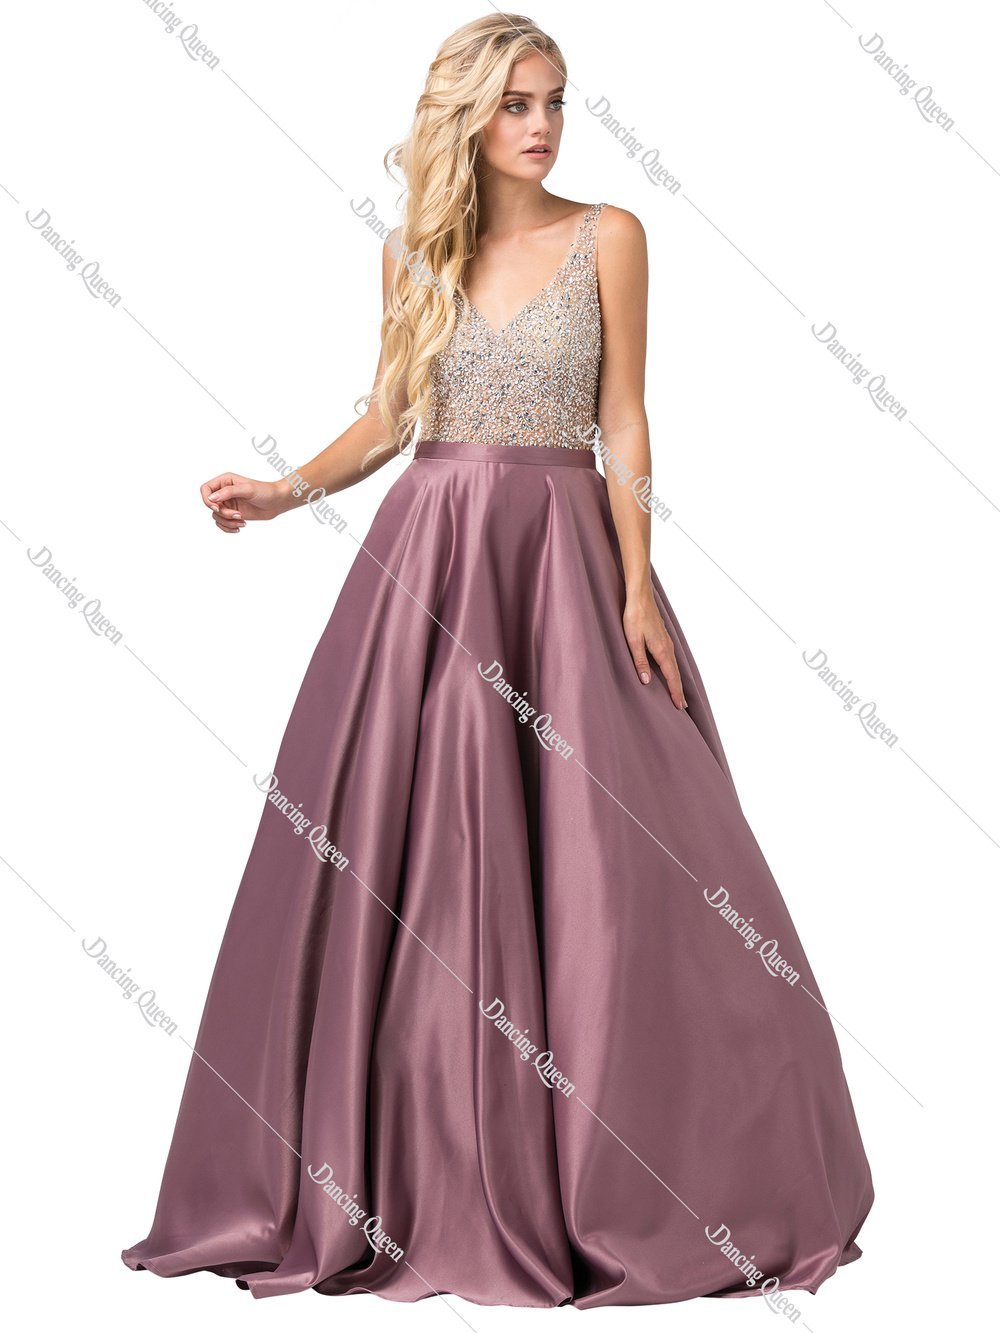 e625dd8316 DQ 2568 - Beaded Open Back Satin Ball Gown with Pockets in 2019 ...